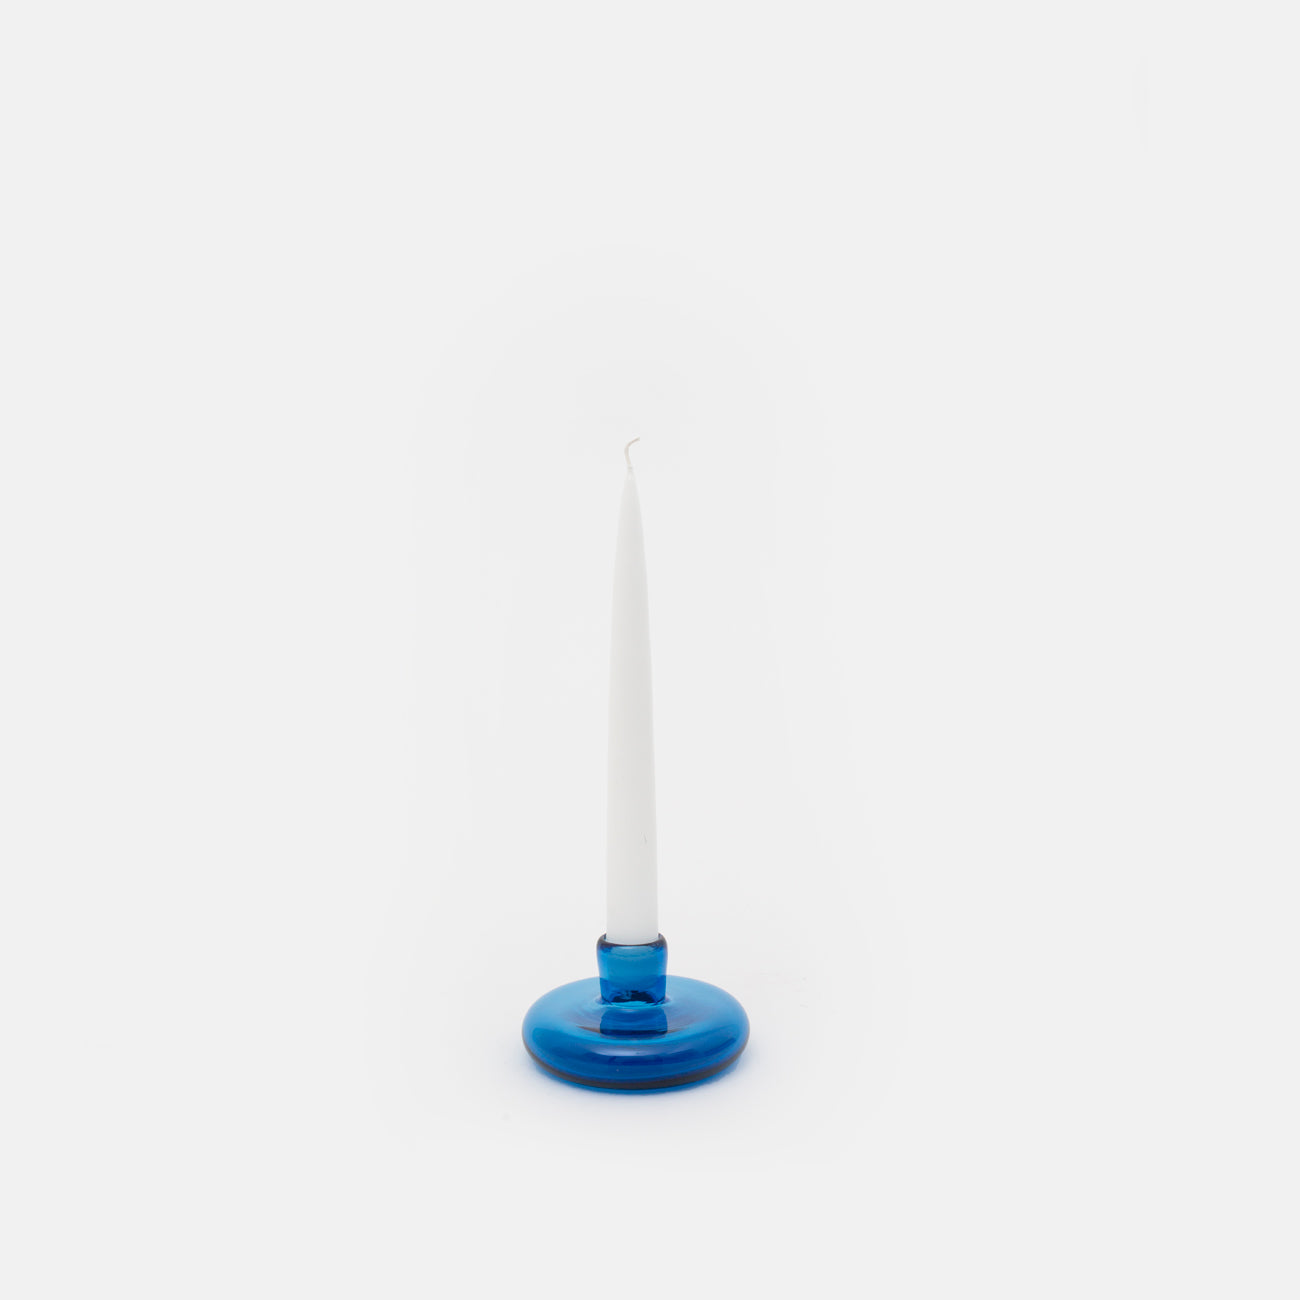 Candlestick Holder in Blue